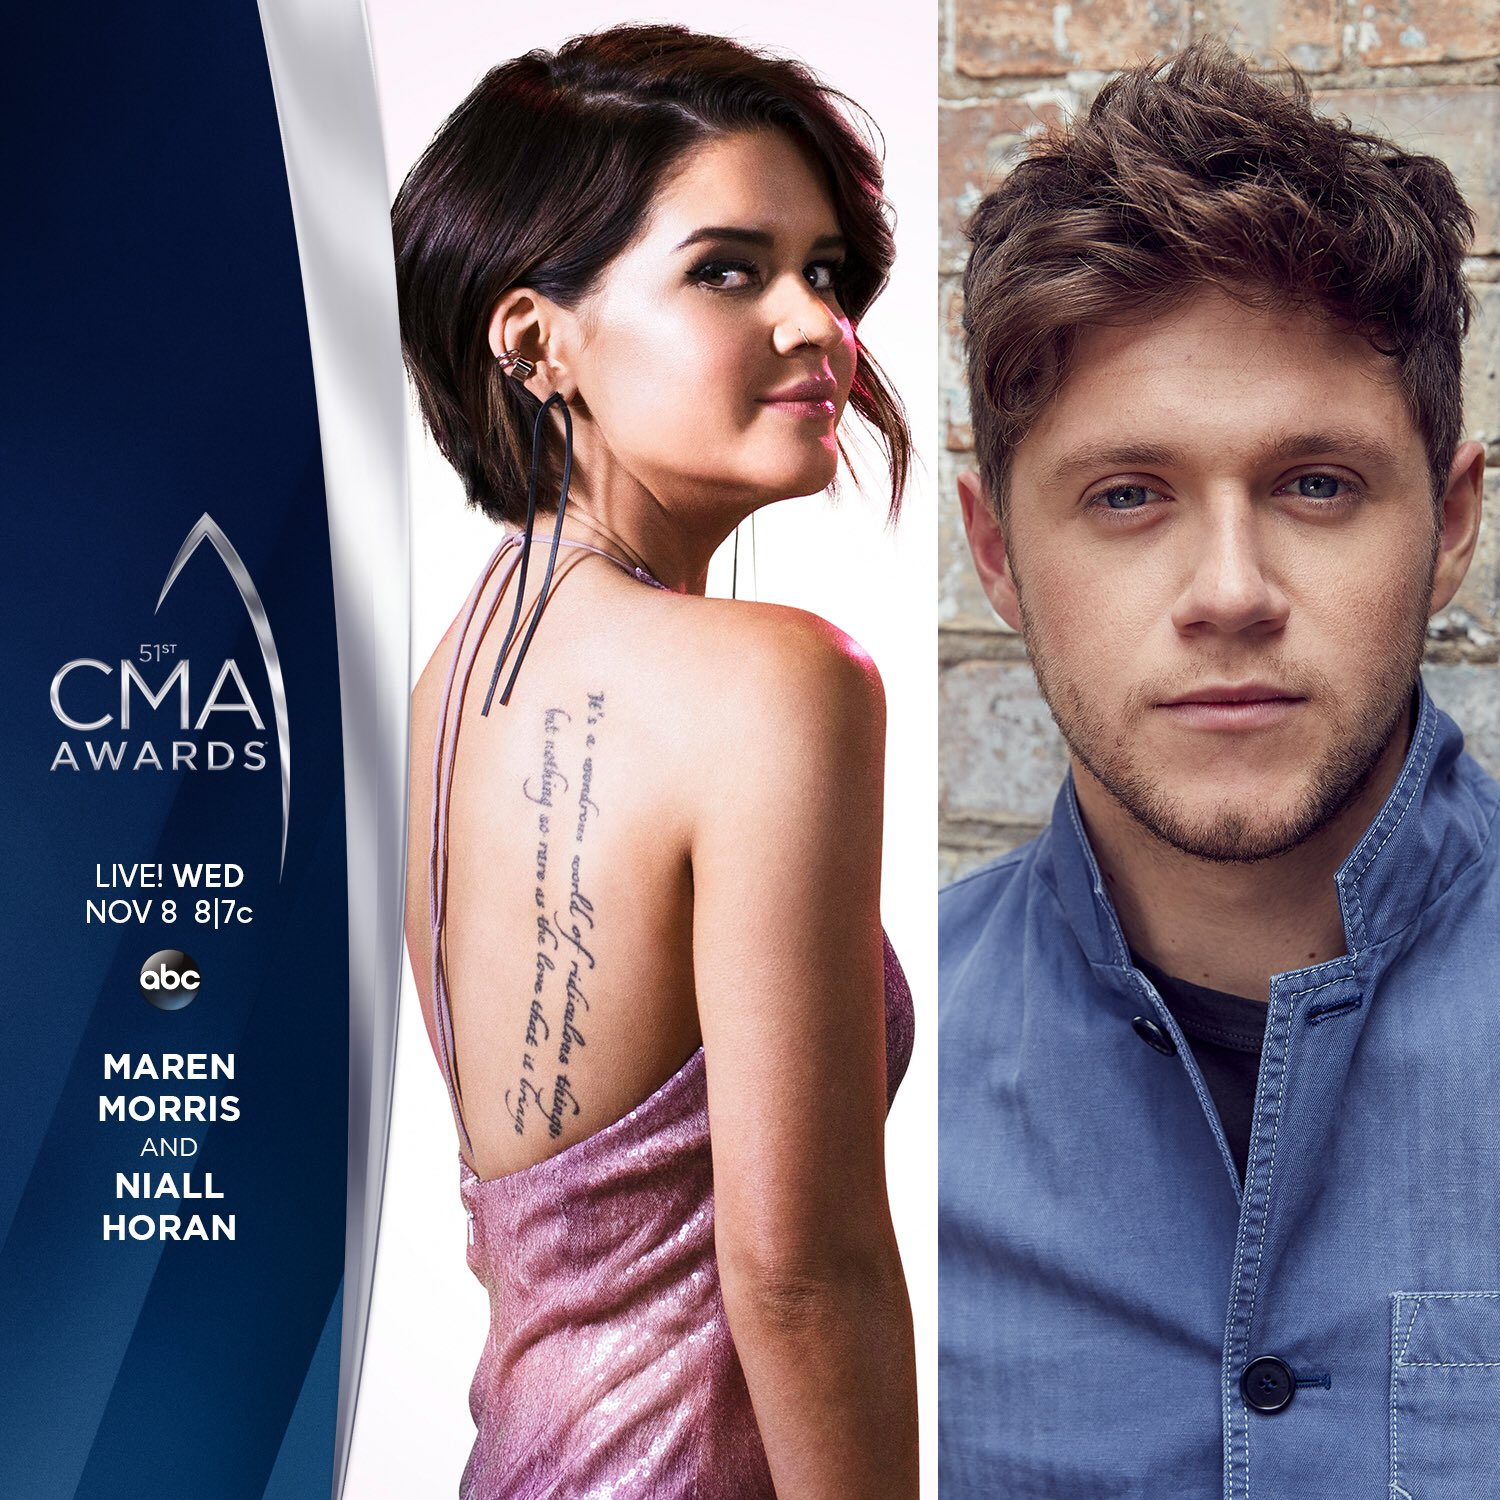 Delighted to say I'm performing Live with @MarenMorris at the #CMAawards ! Watch Wed 8th Nov on ABC https://t.co/3TVPVwgpC8